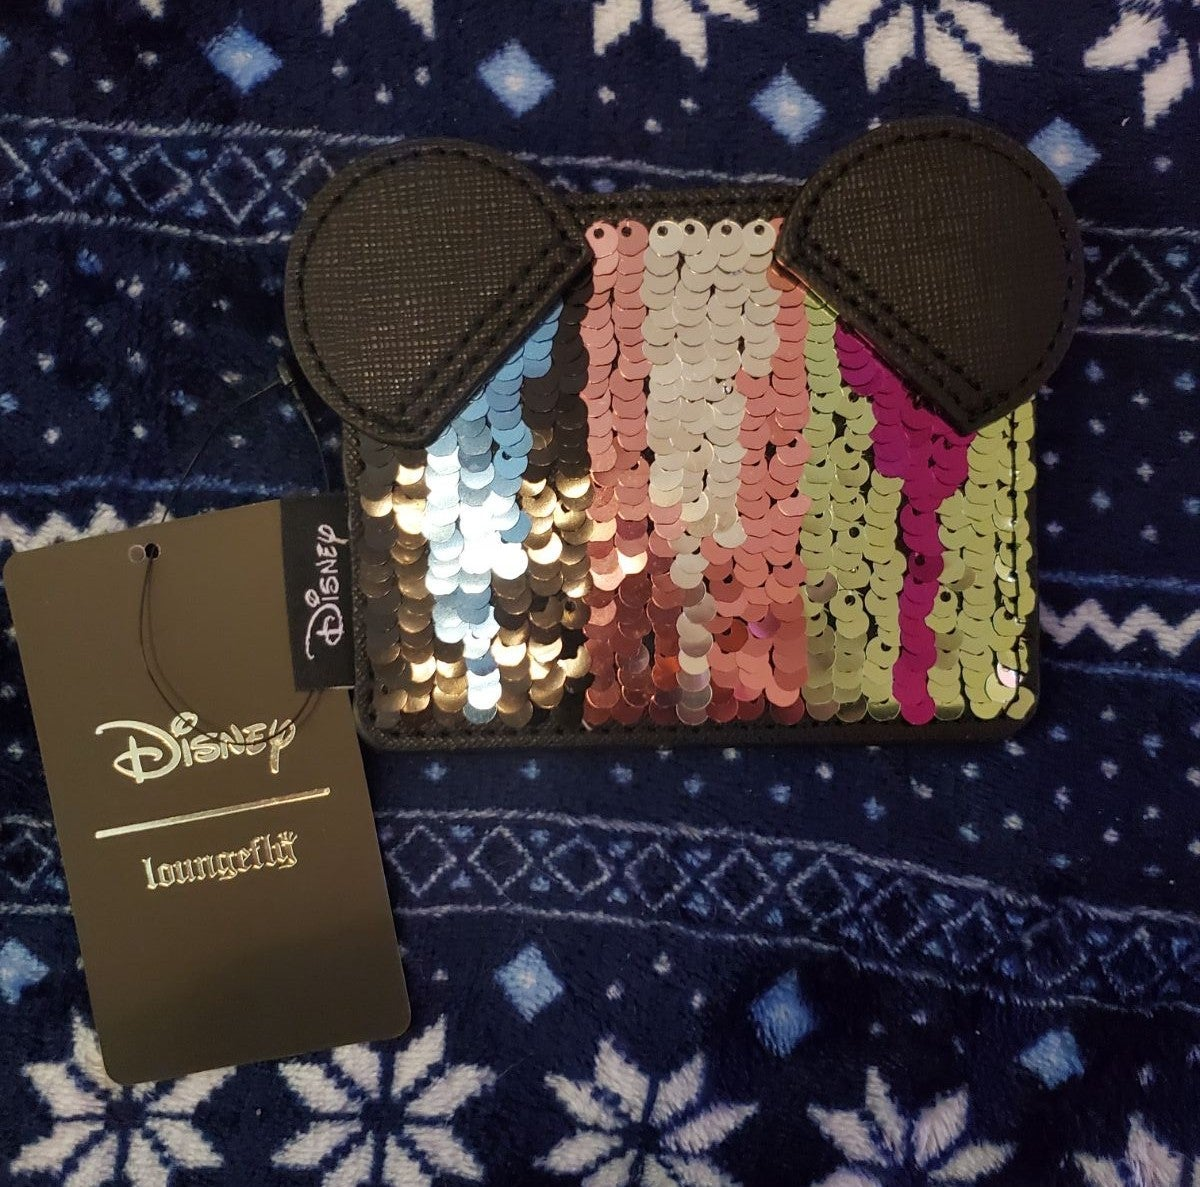 Loungefly Disney card holder